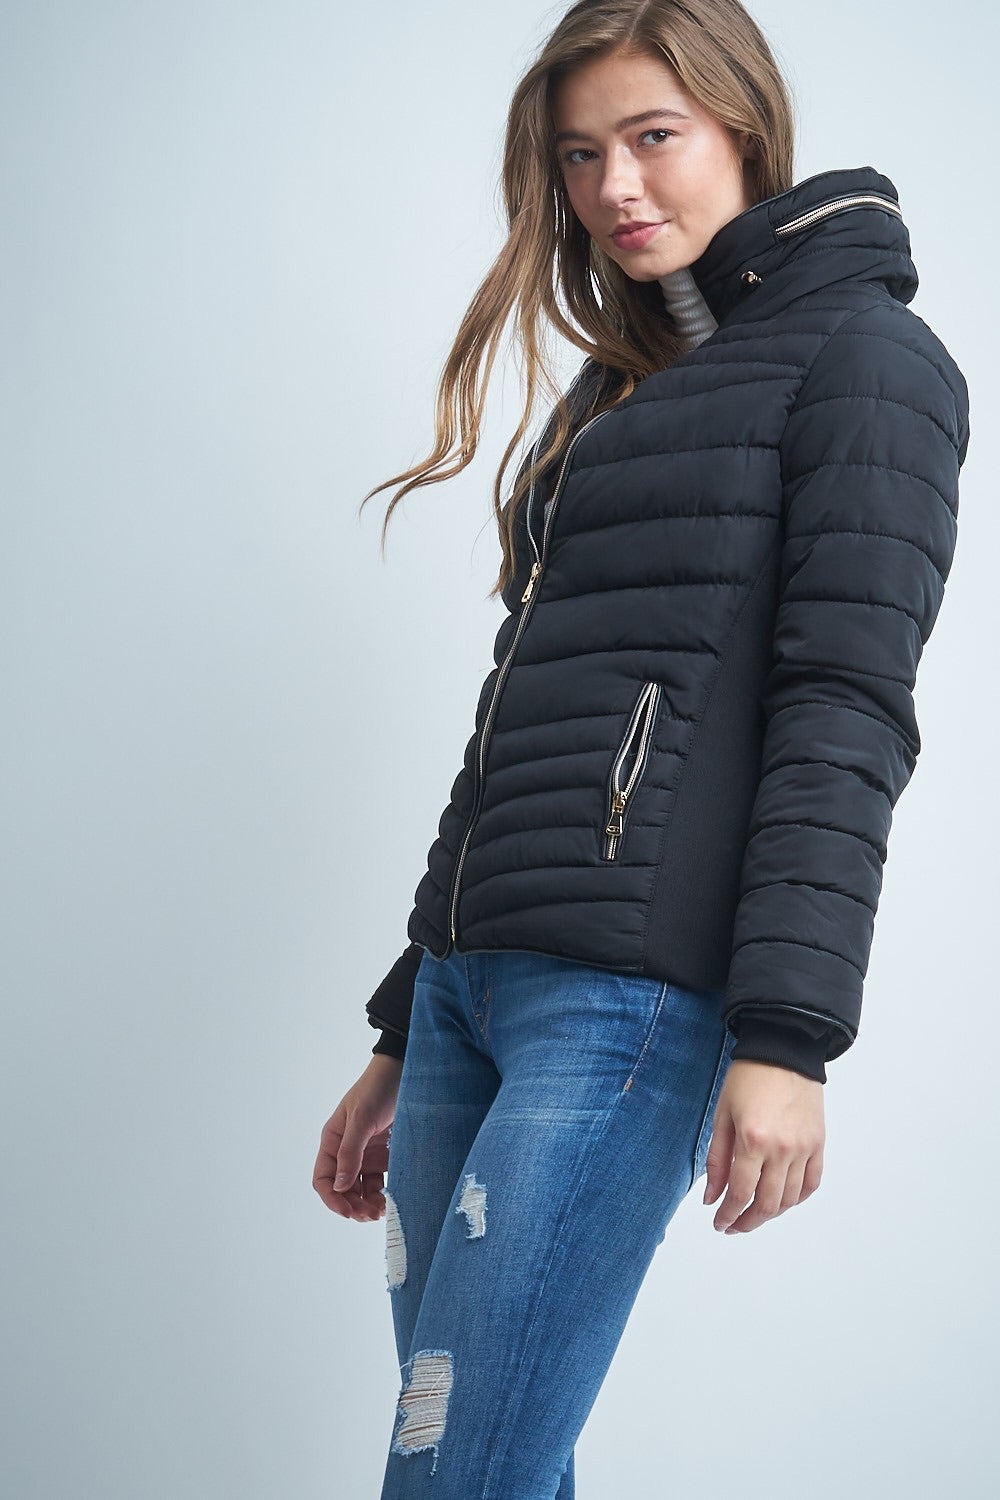 Long Sleeved Parka Jacket with Hood in Black